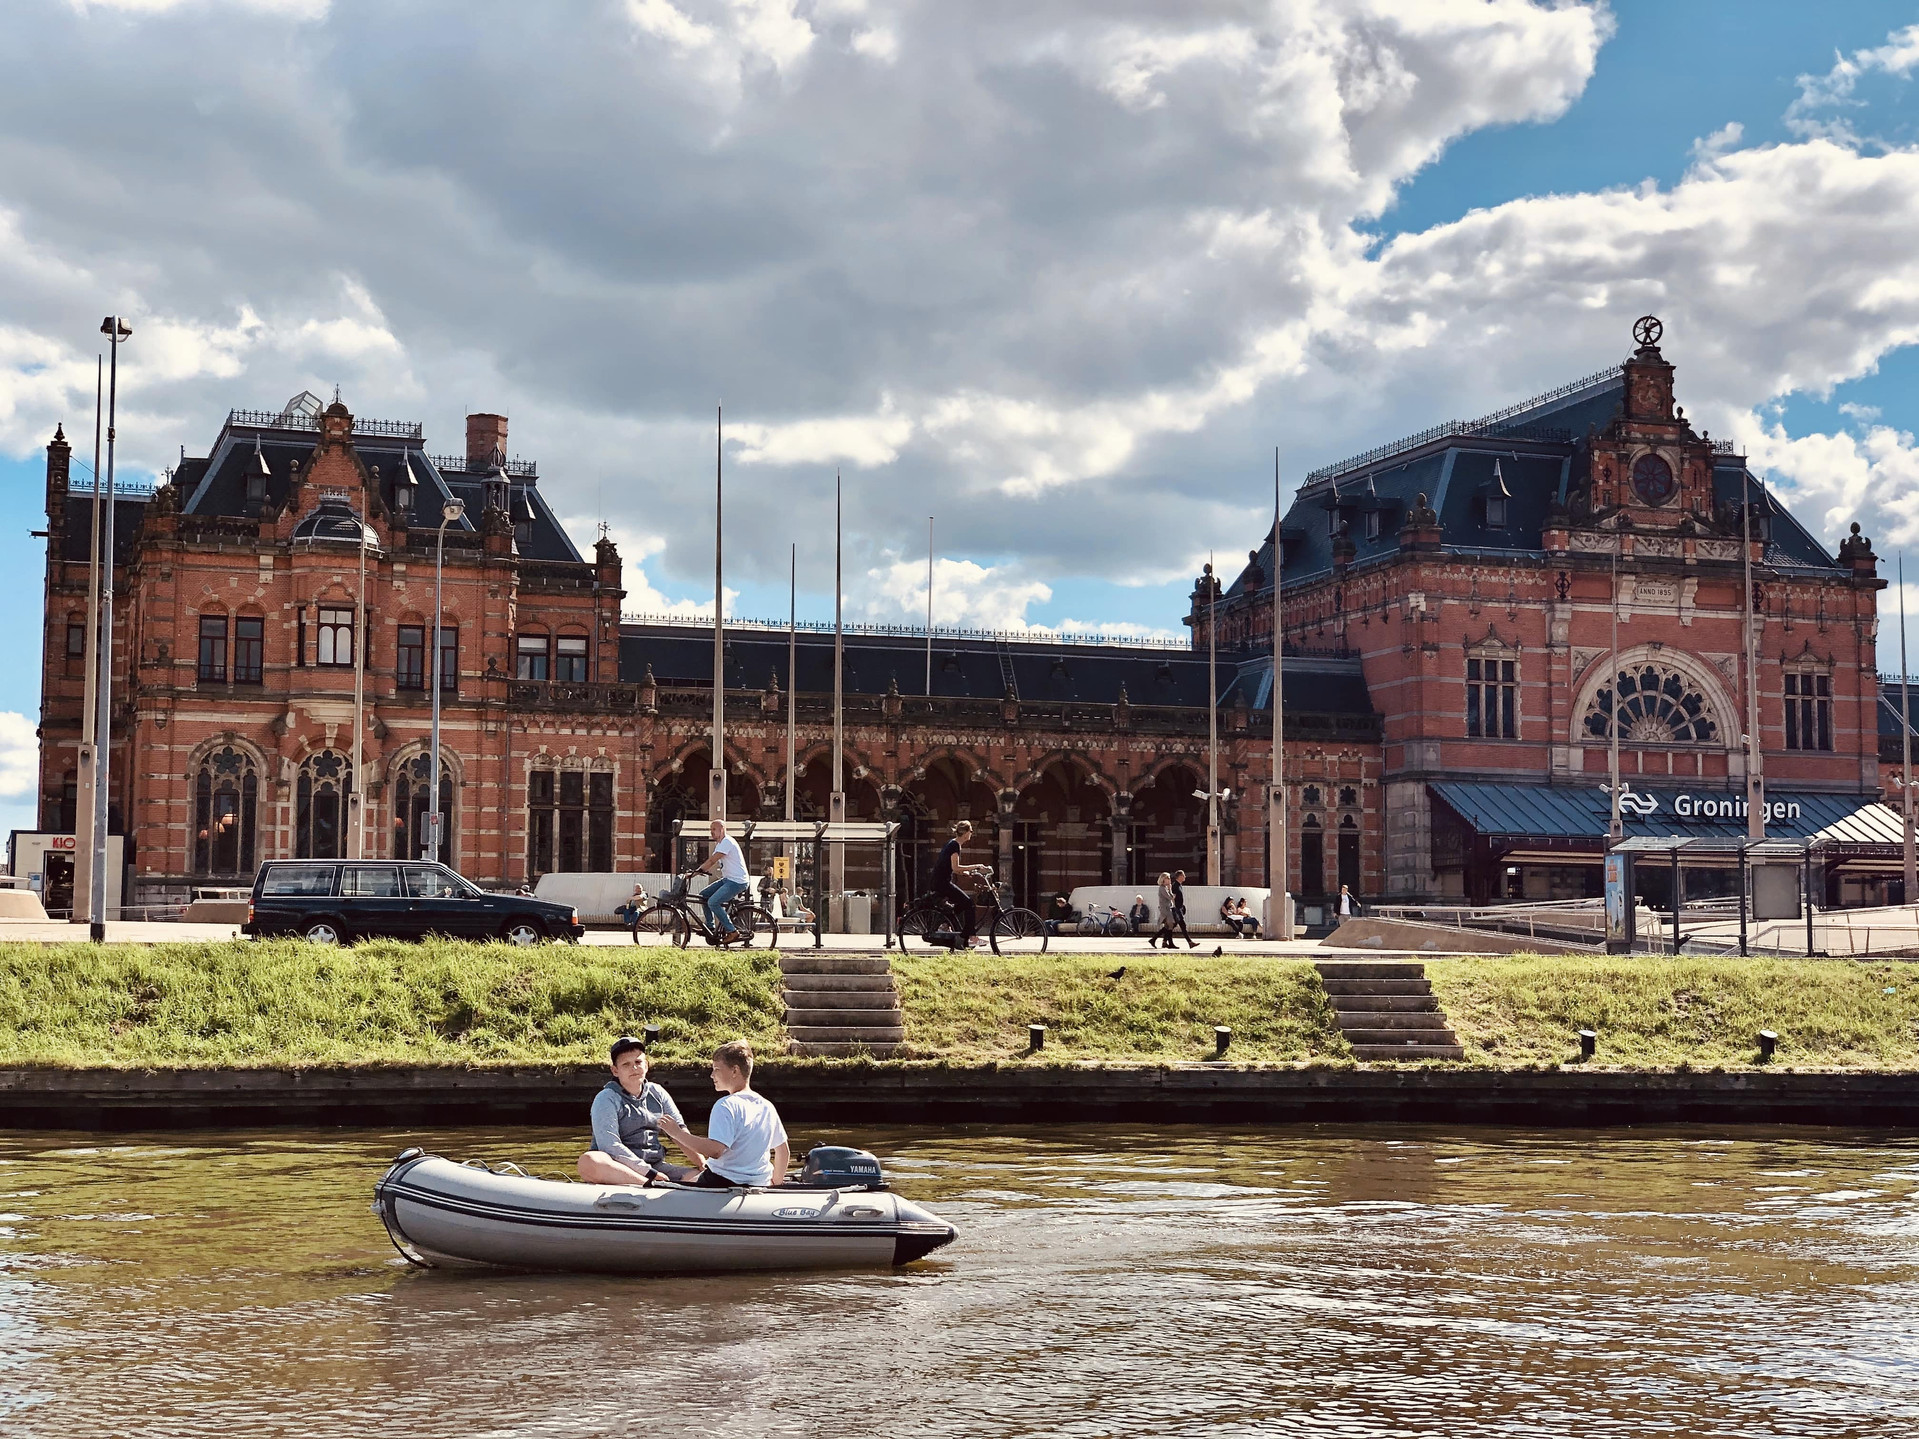 Views of Groningen station by boat-The Netherlands with Diepsloep